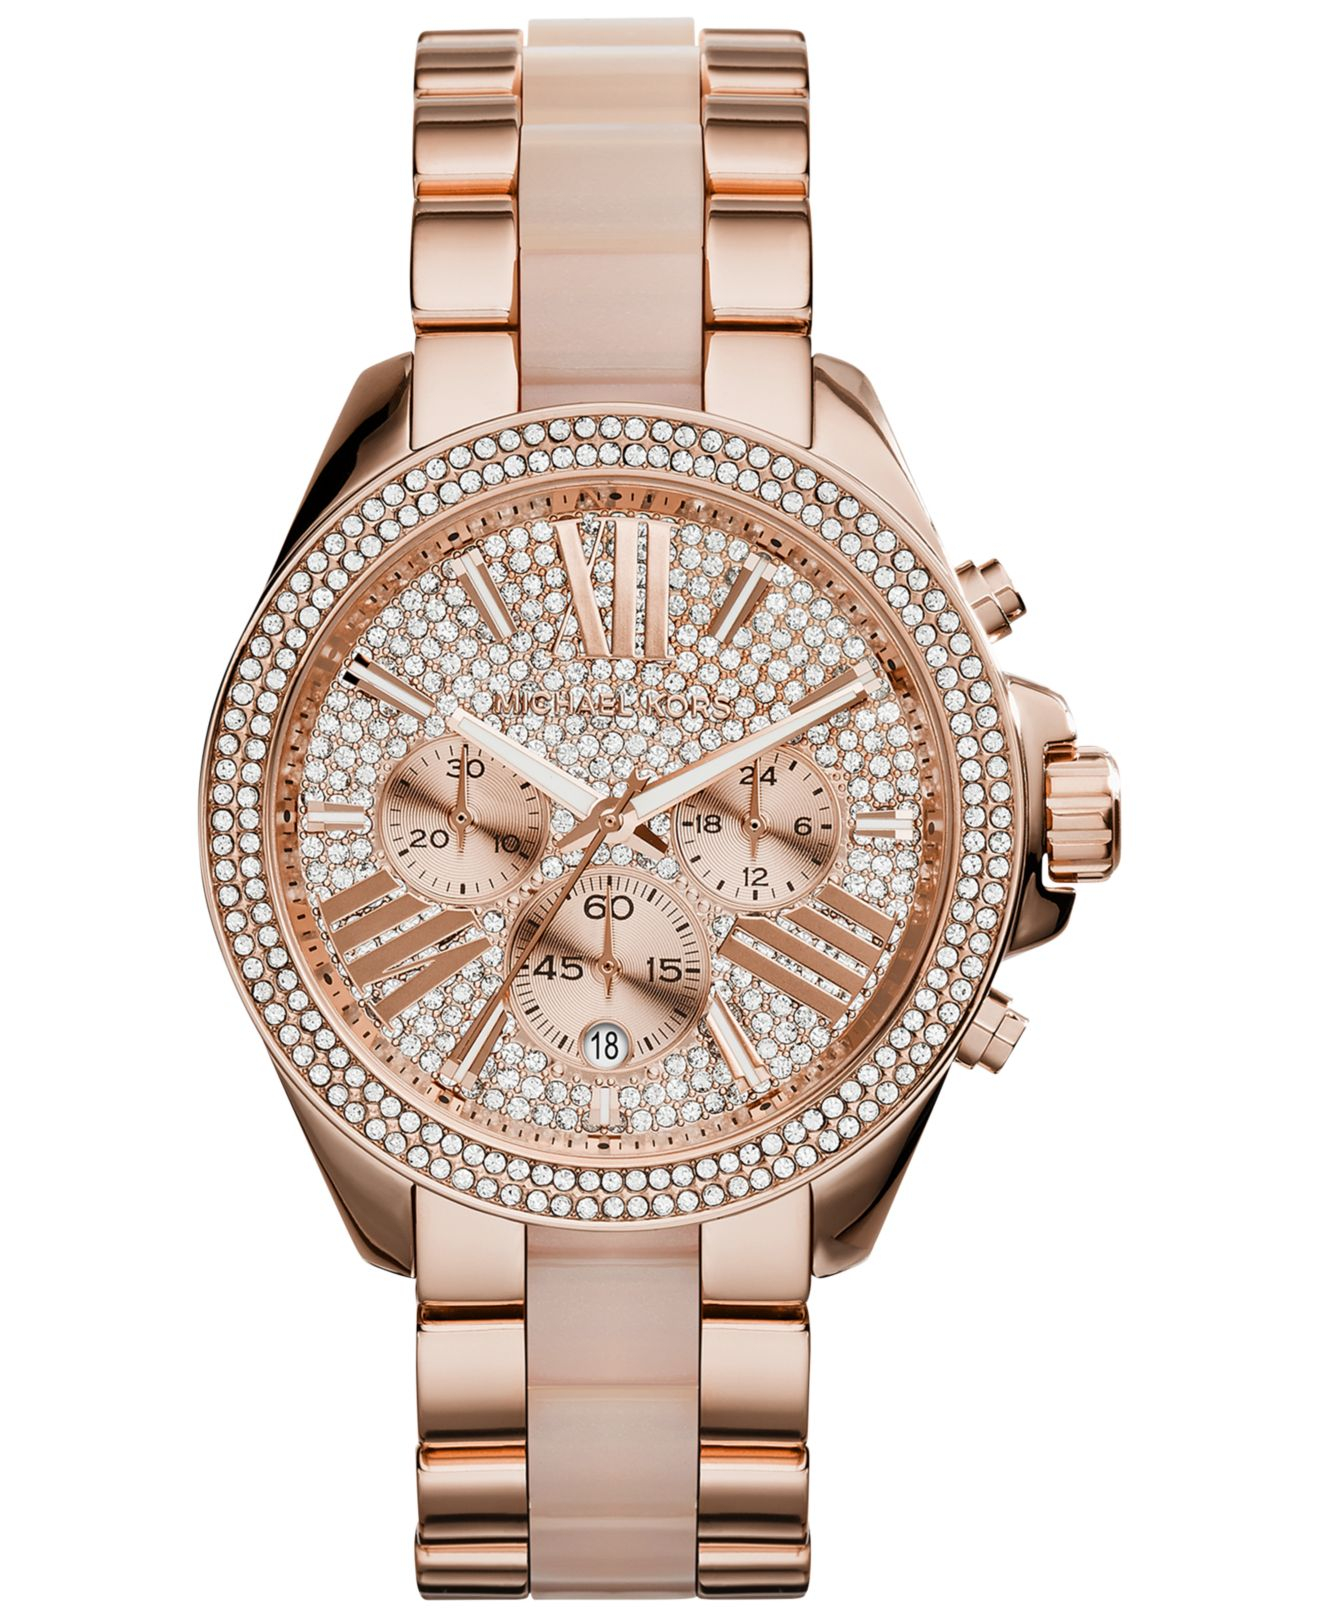 a4013b1794b5f All Diamond Rose Gold Michael Kors Watch - HD Image Flower and Rose ...